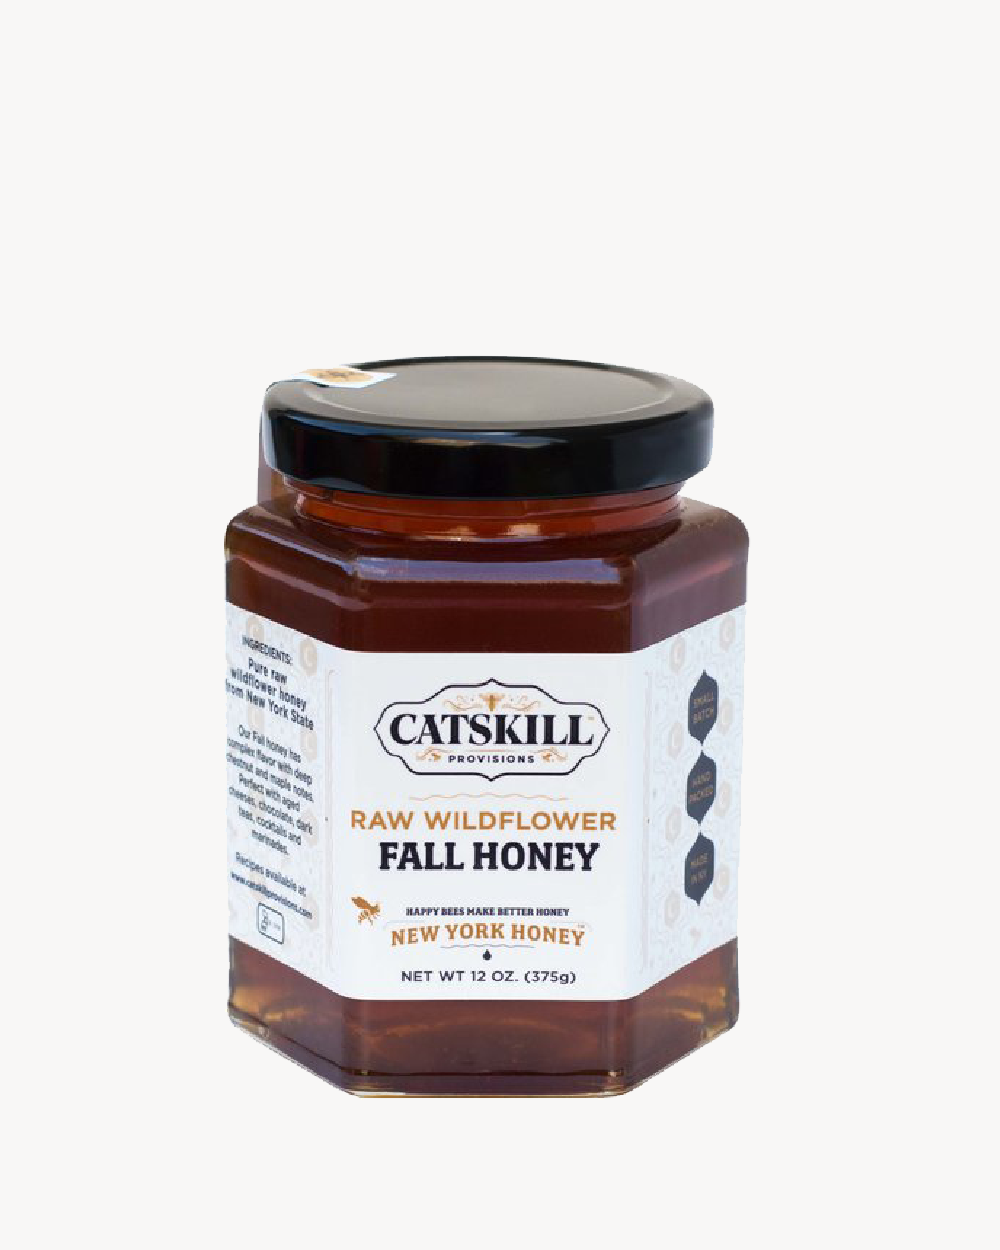 RAW WILDFLOWER NY STATE HONEY - FALL